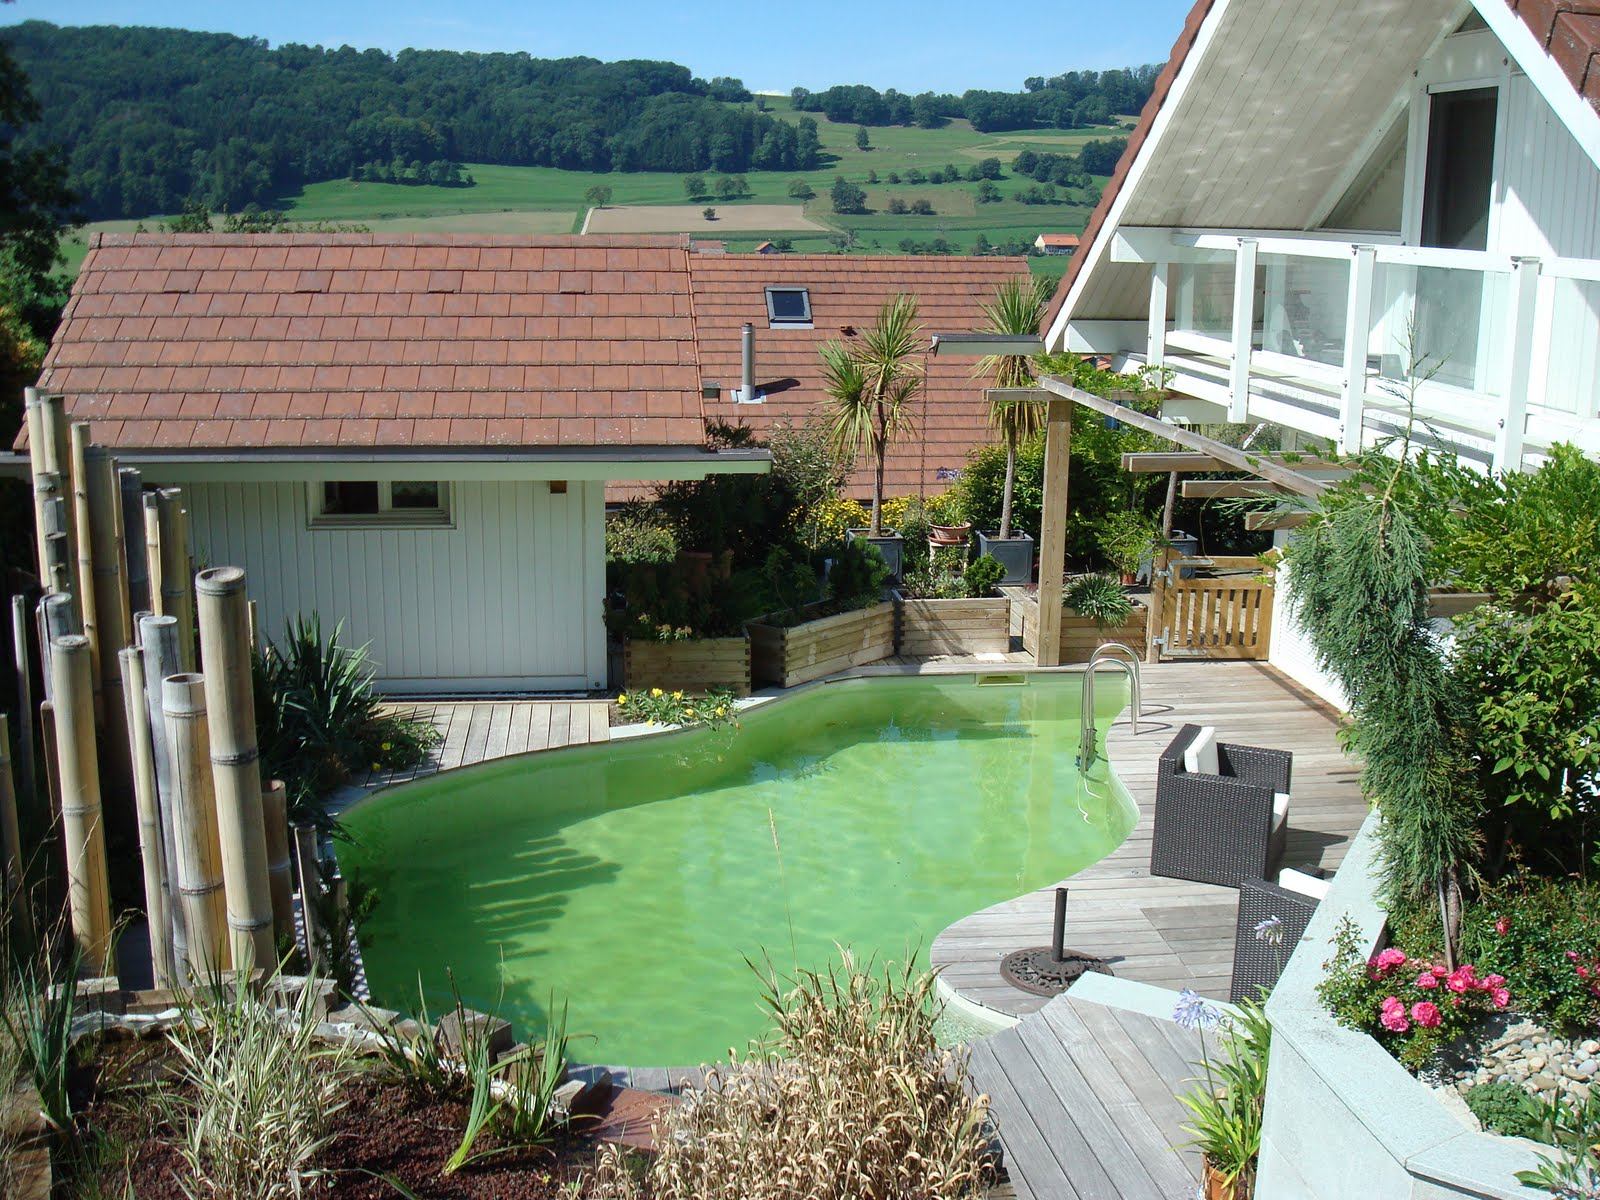 Cr ateur installateur de piscine naturelle en haute for Piscine de thonon